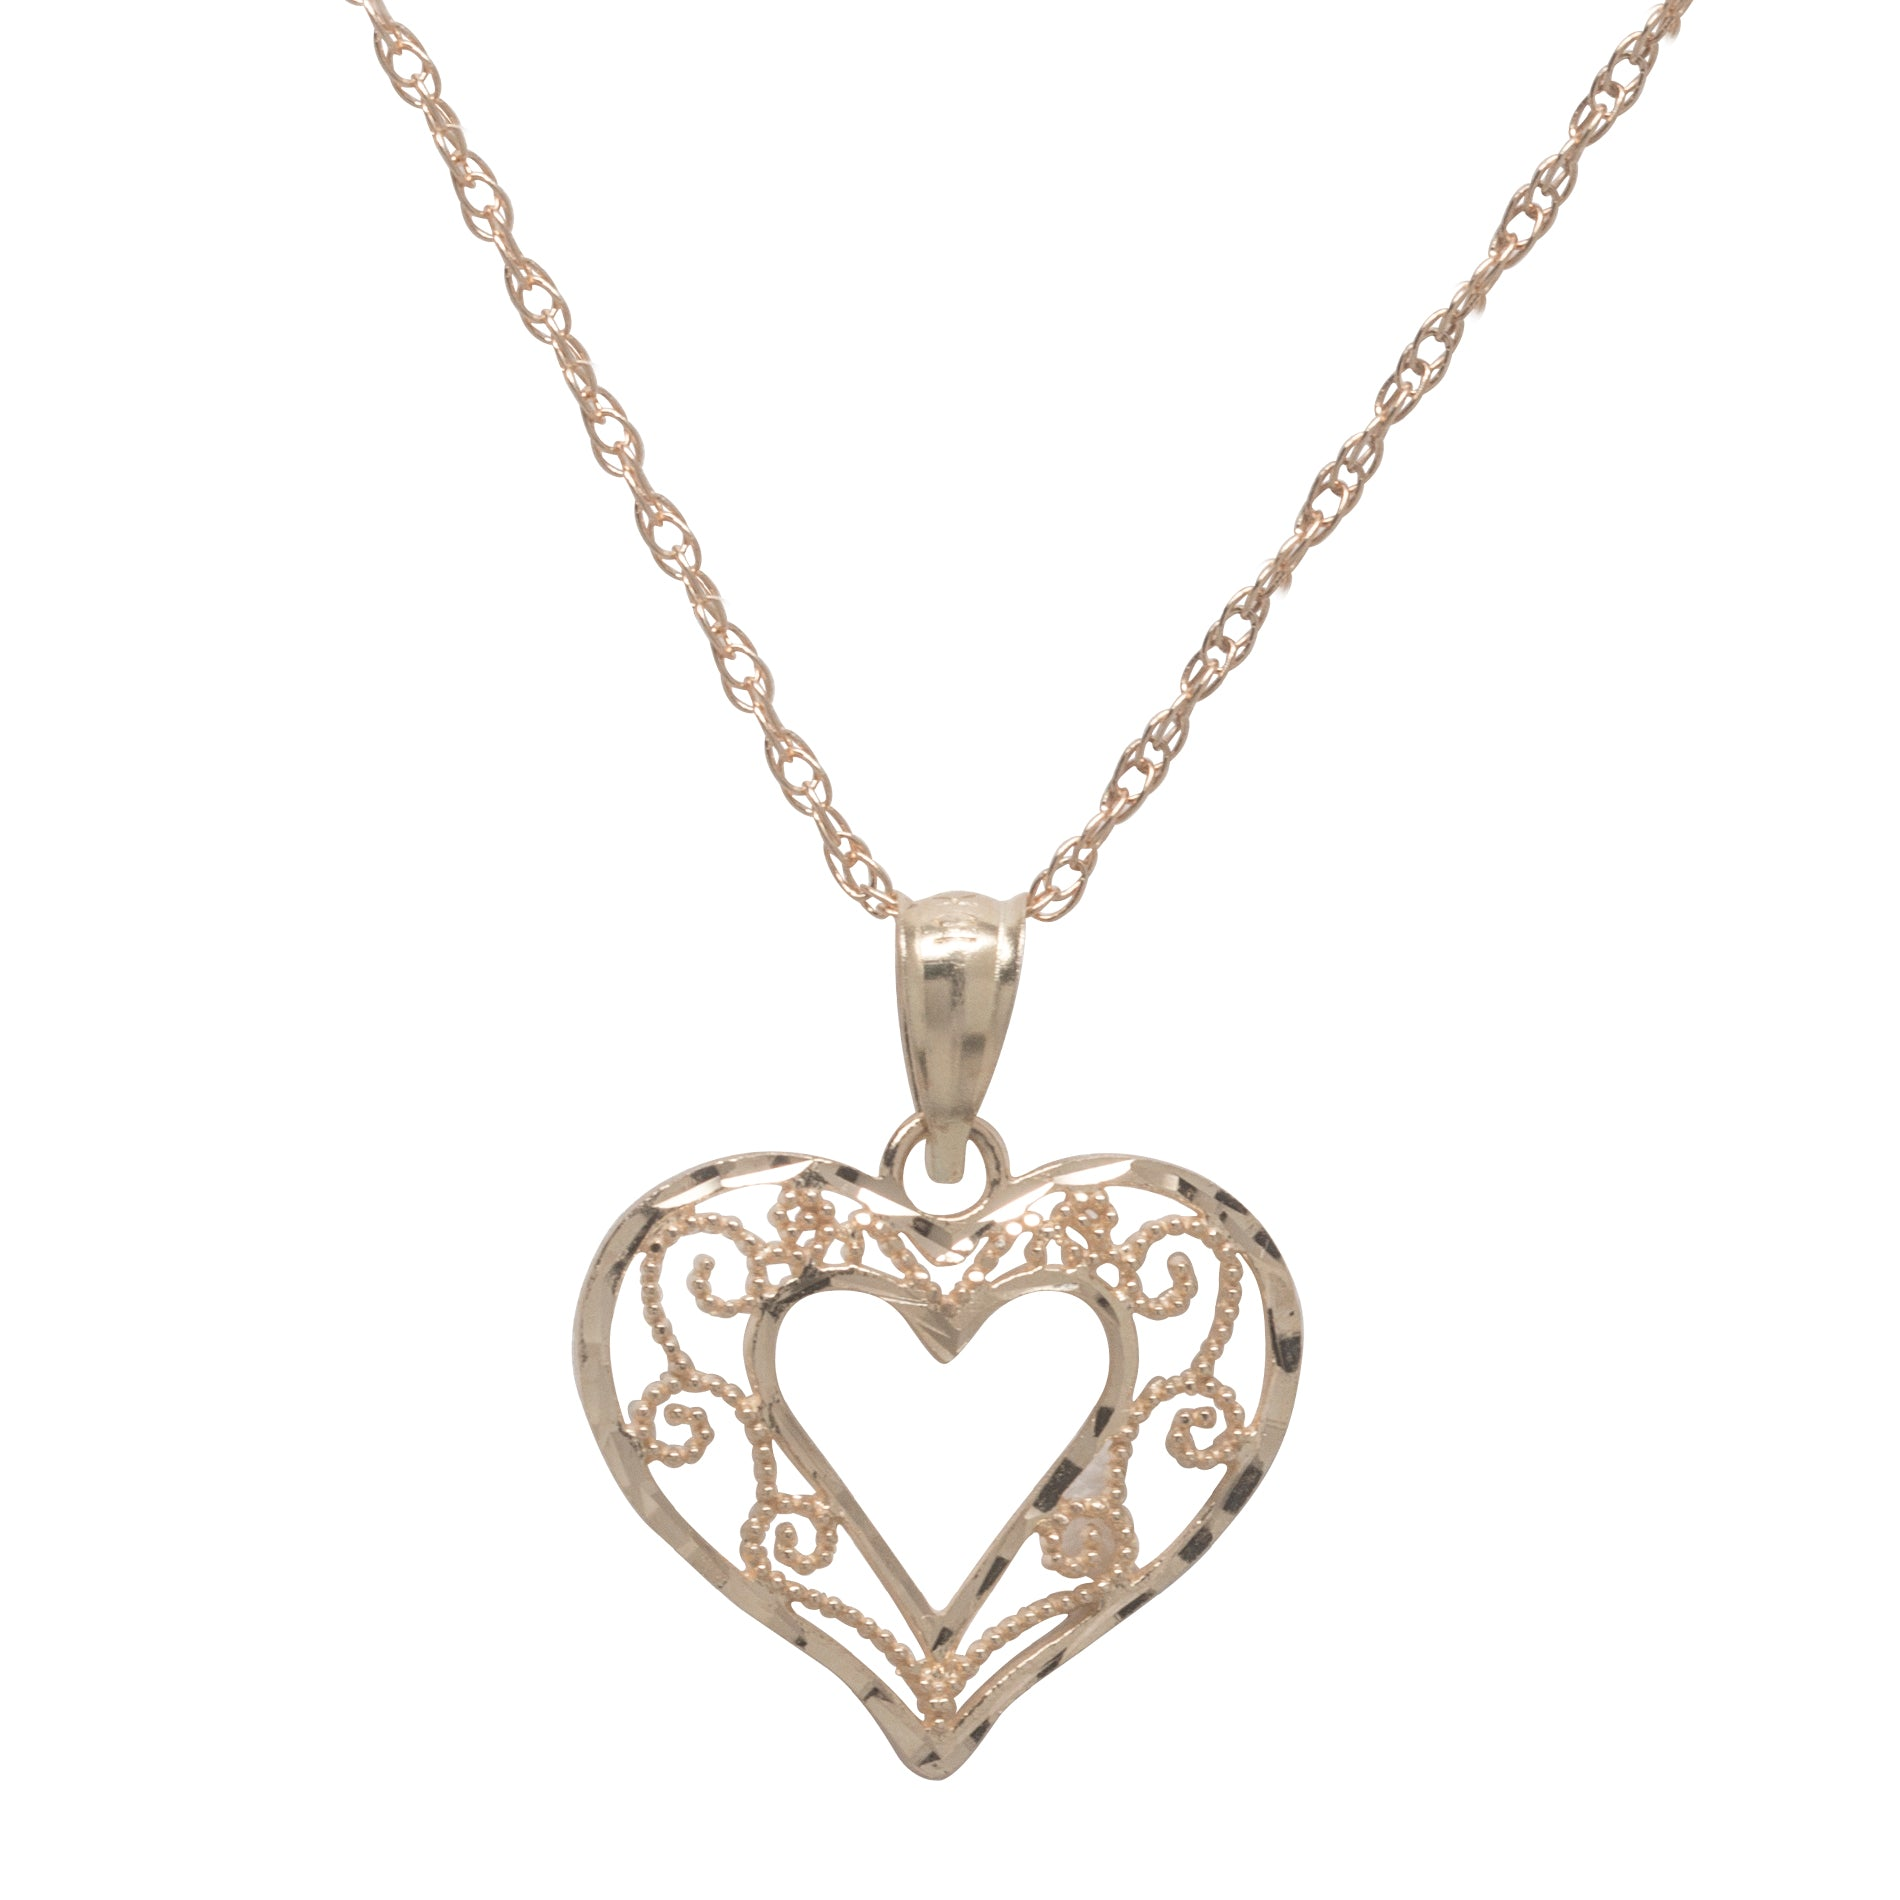 10k yellow gold filigree heart pendant little switzerland 10k yellow gold filigree heart pendant aloadofball Image collections